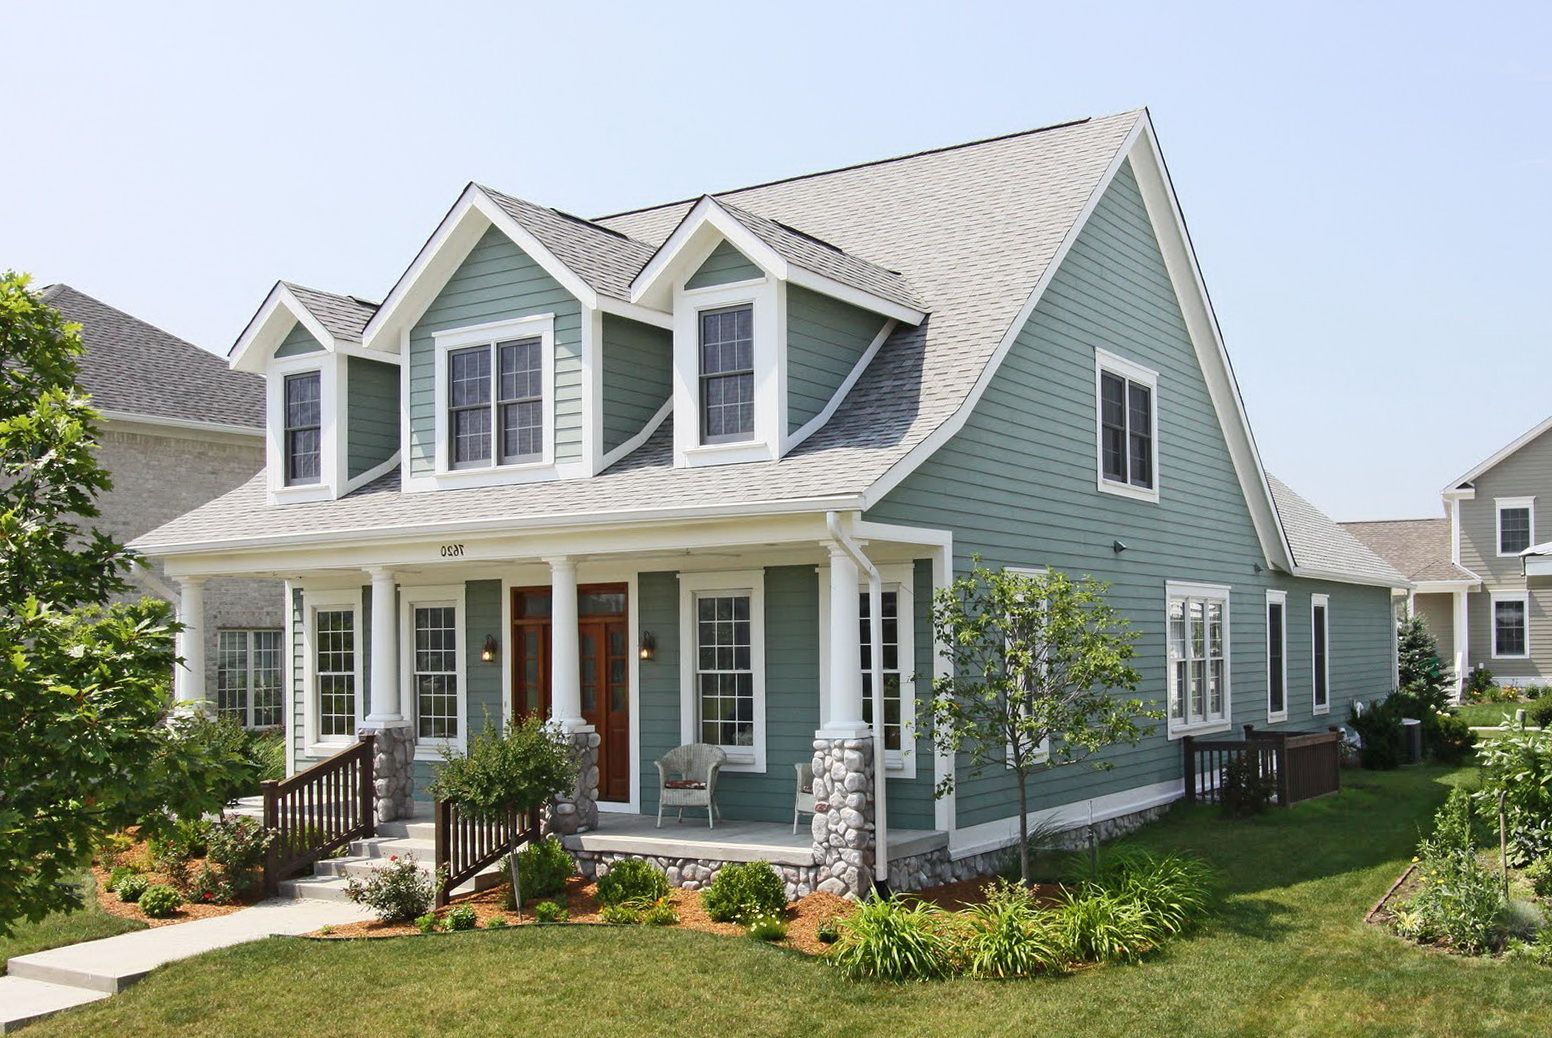 Pin By Ginger Davis On Before And After Cape Cod House Exterior Cape Cod Style House House Front Porch